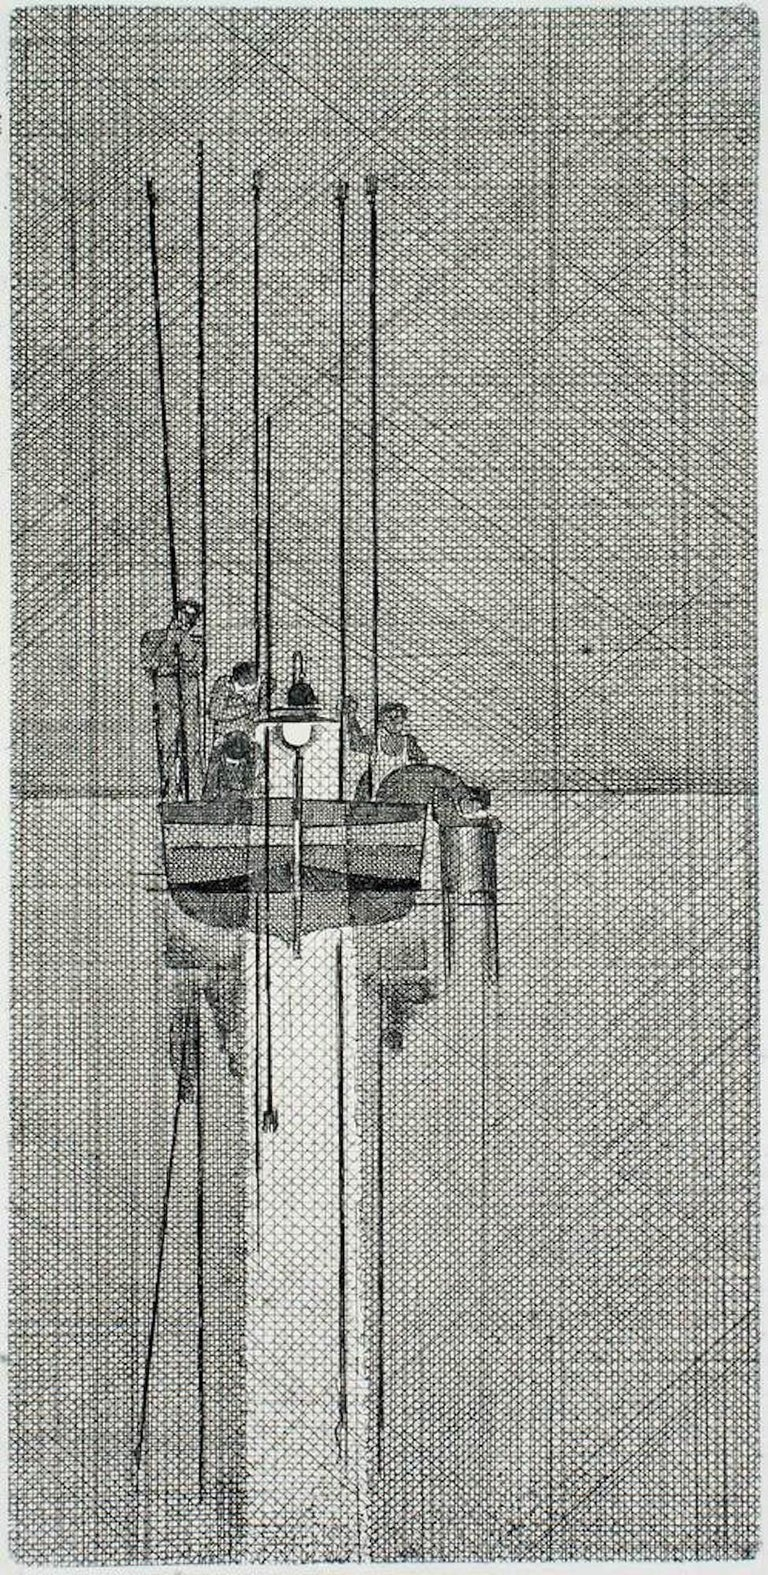 f2728aa259f1 Bruno Caruso - Fishing Boat - Original Etching by Bruno Caruso ...